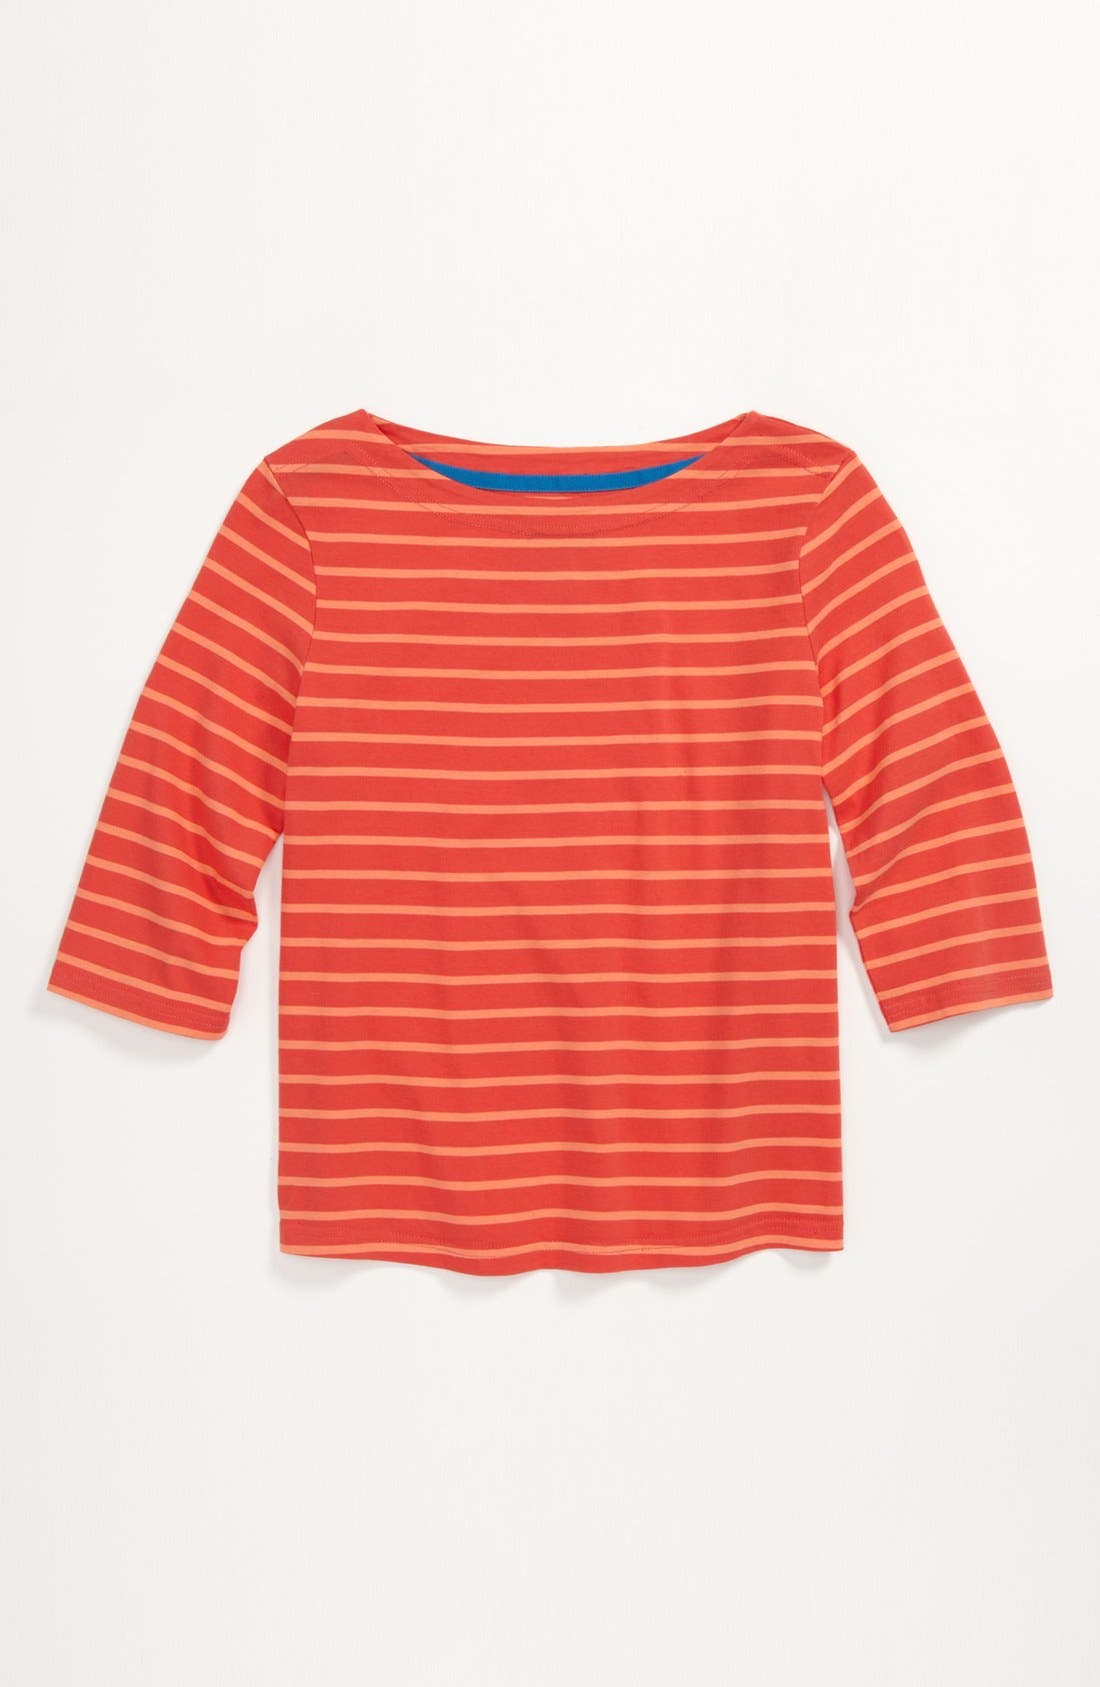 Alternate Image 1 Selected - Johnnie b 'Stripy Boatneck' Tee (Big Girls)